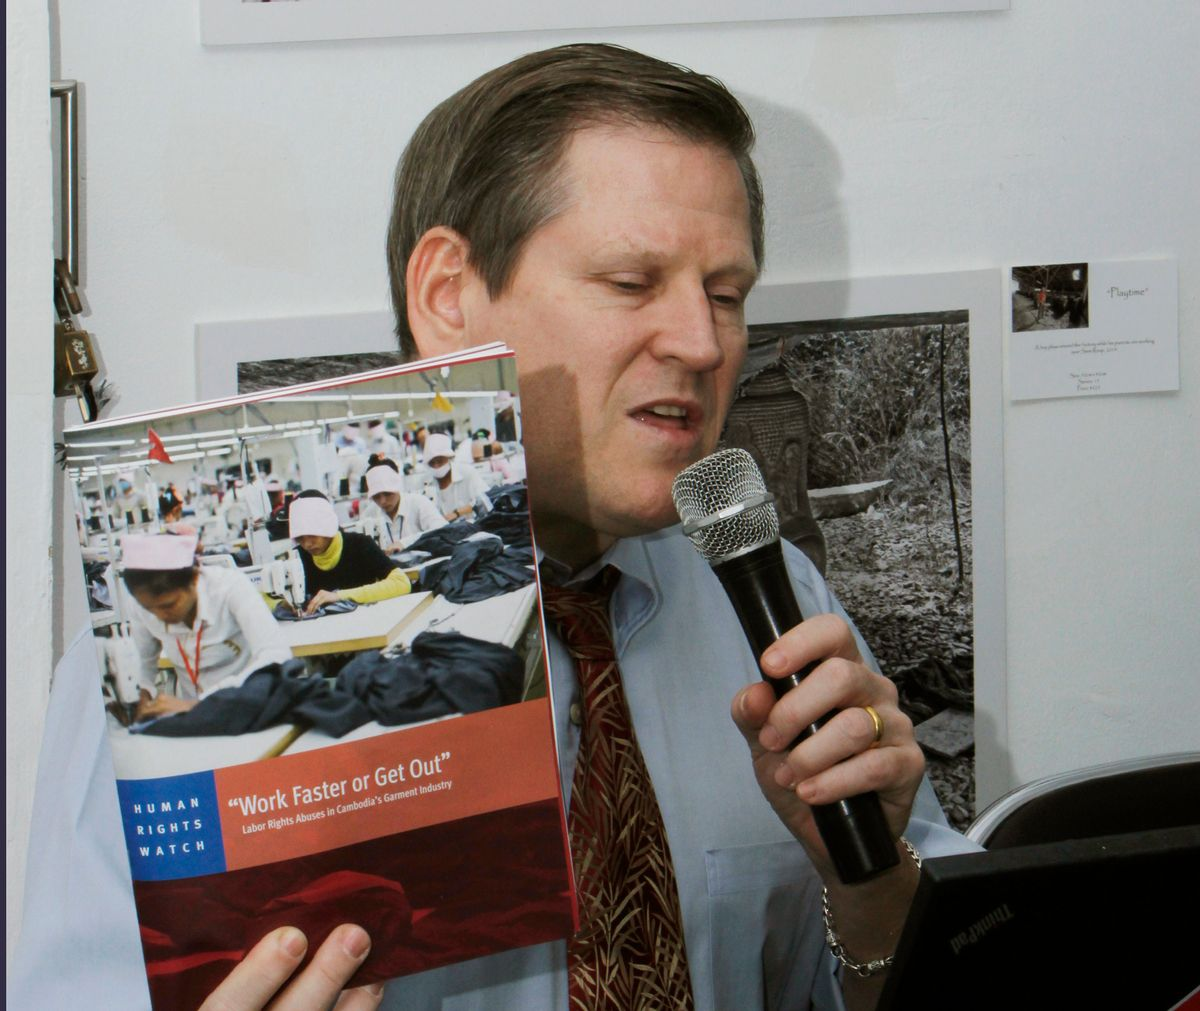 Phil Robertson, deputy director of Human Rights Watch's Asia division, speaks while showing its report during a press conference in Phnom Penh, Cambodia Thursday, March 12, 2015. Leading clothing retailers such as Gap and H&M need to help alleviate labor abuses at factories in Cambodia that manufacture their products, the New York-based human rights organization said. (AP Photo/Heng Sinith)  (Heng Sinith)